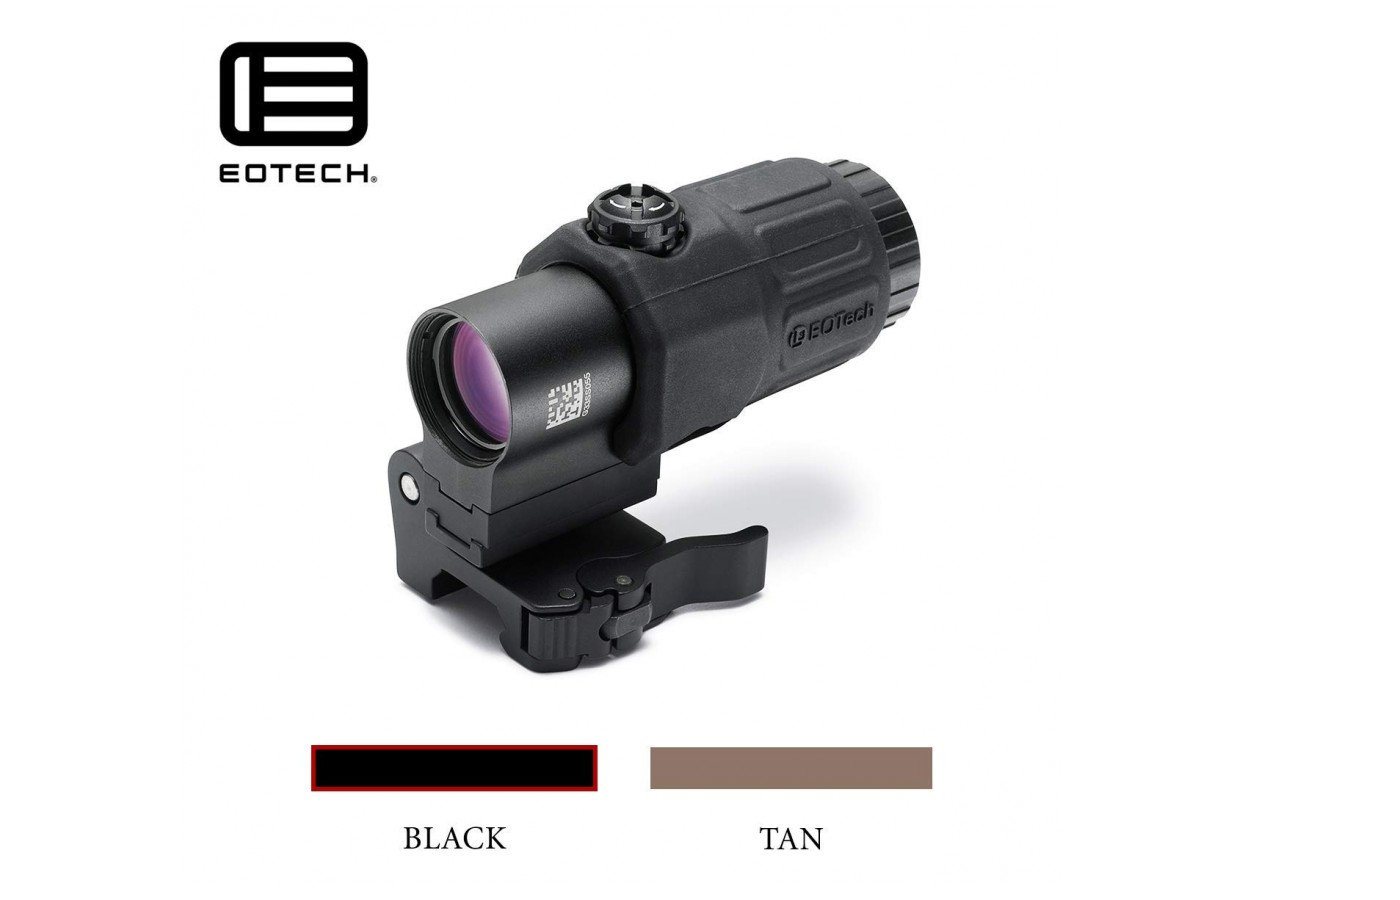 EOTEch Magnifier is compact and durable